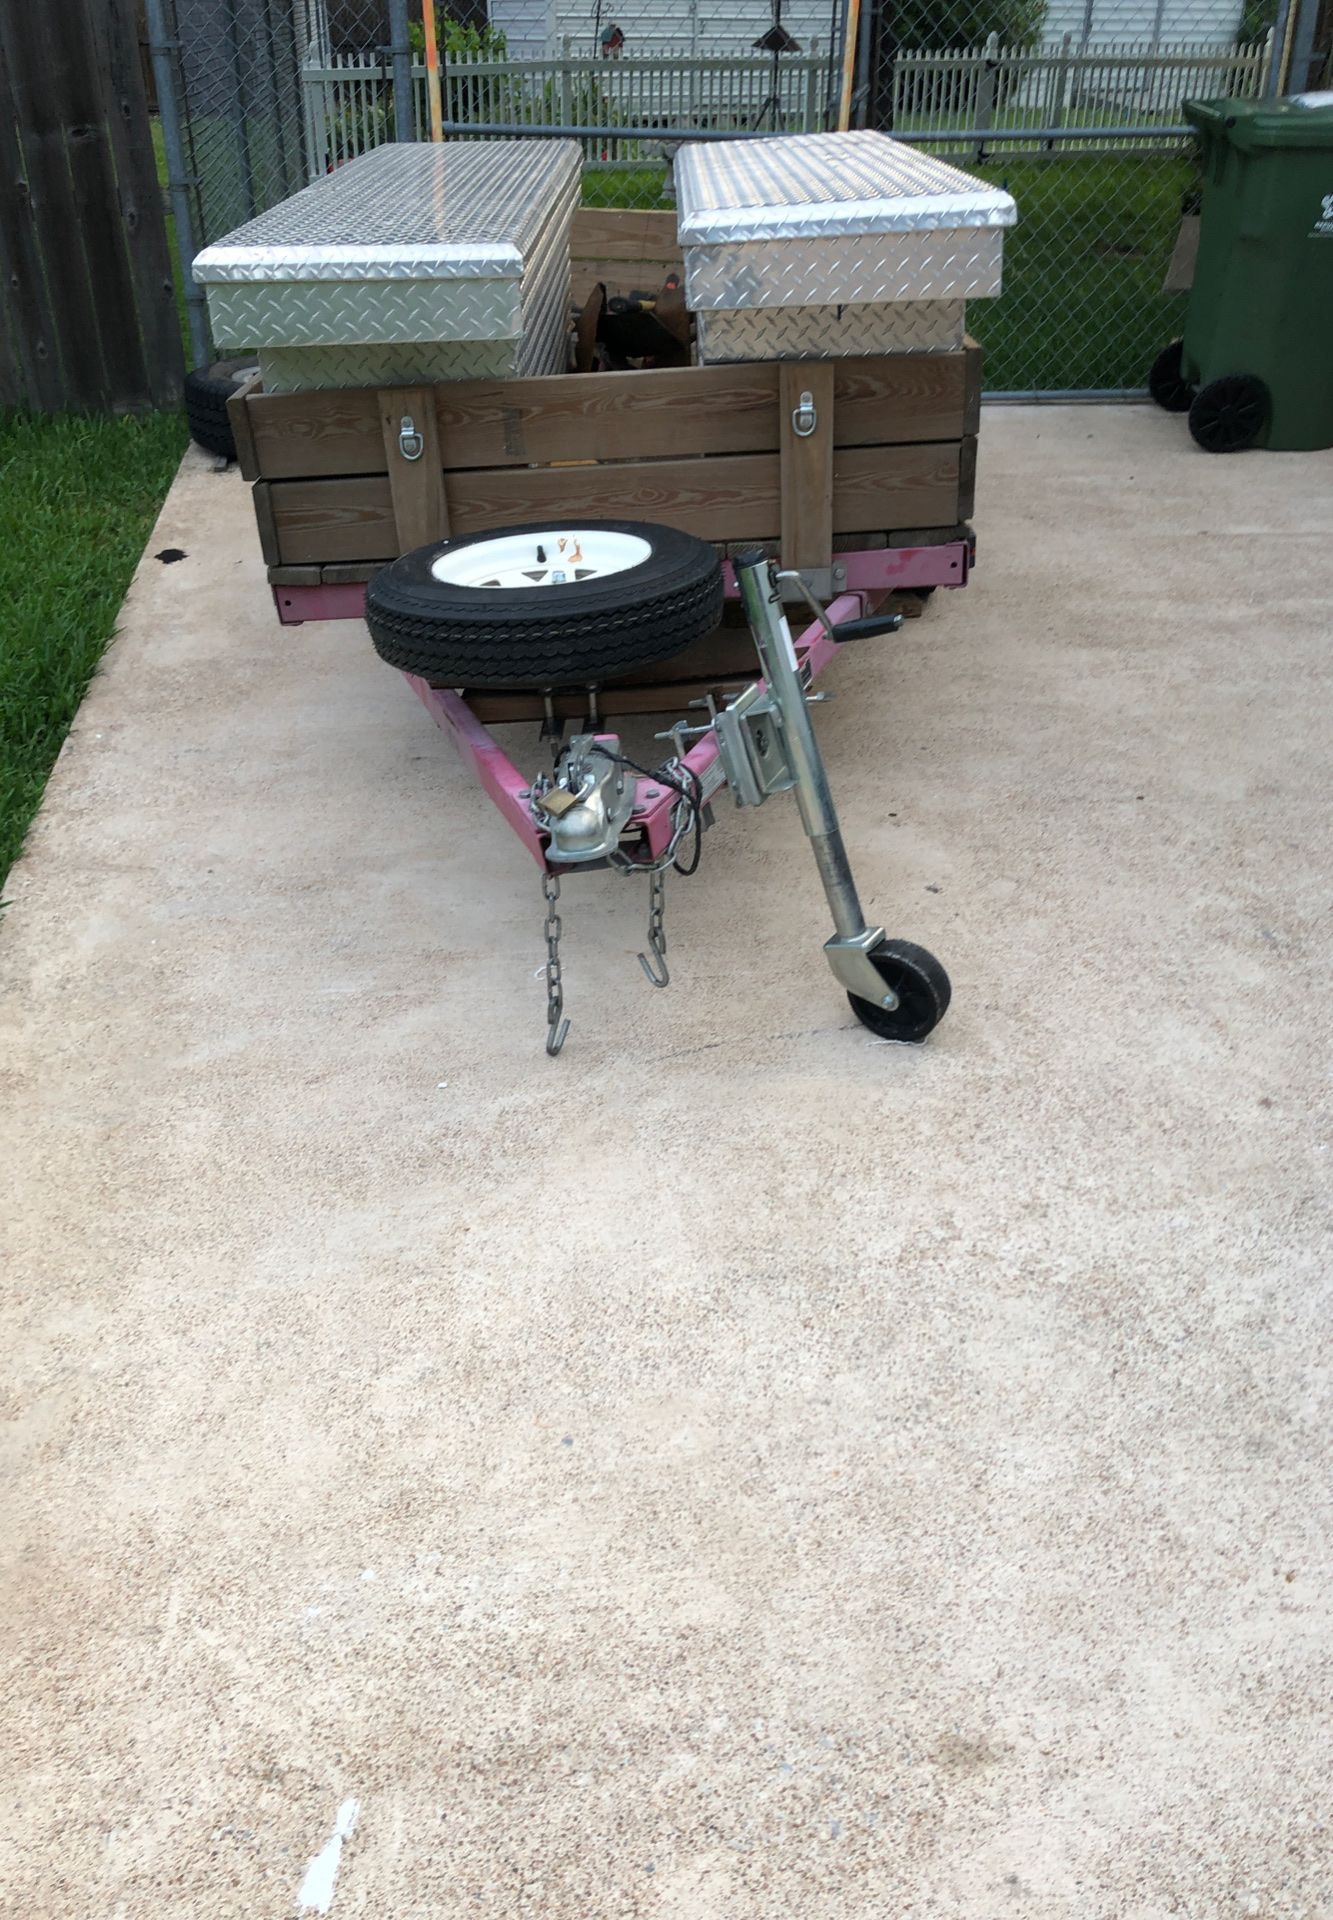 Utility trailer, tool box's come with and can be removed easy to have a open 4x8 trailer